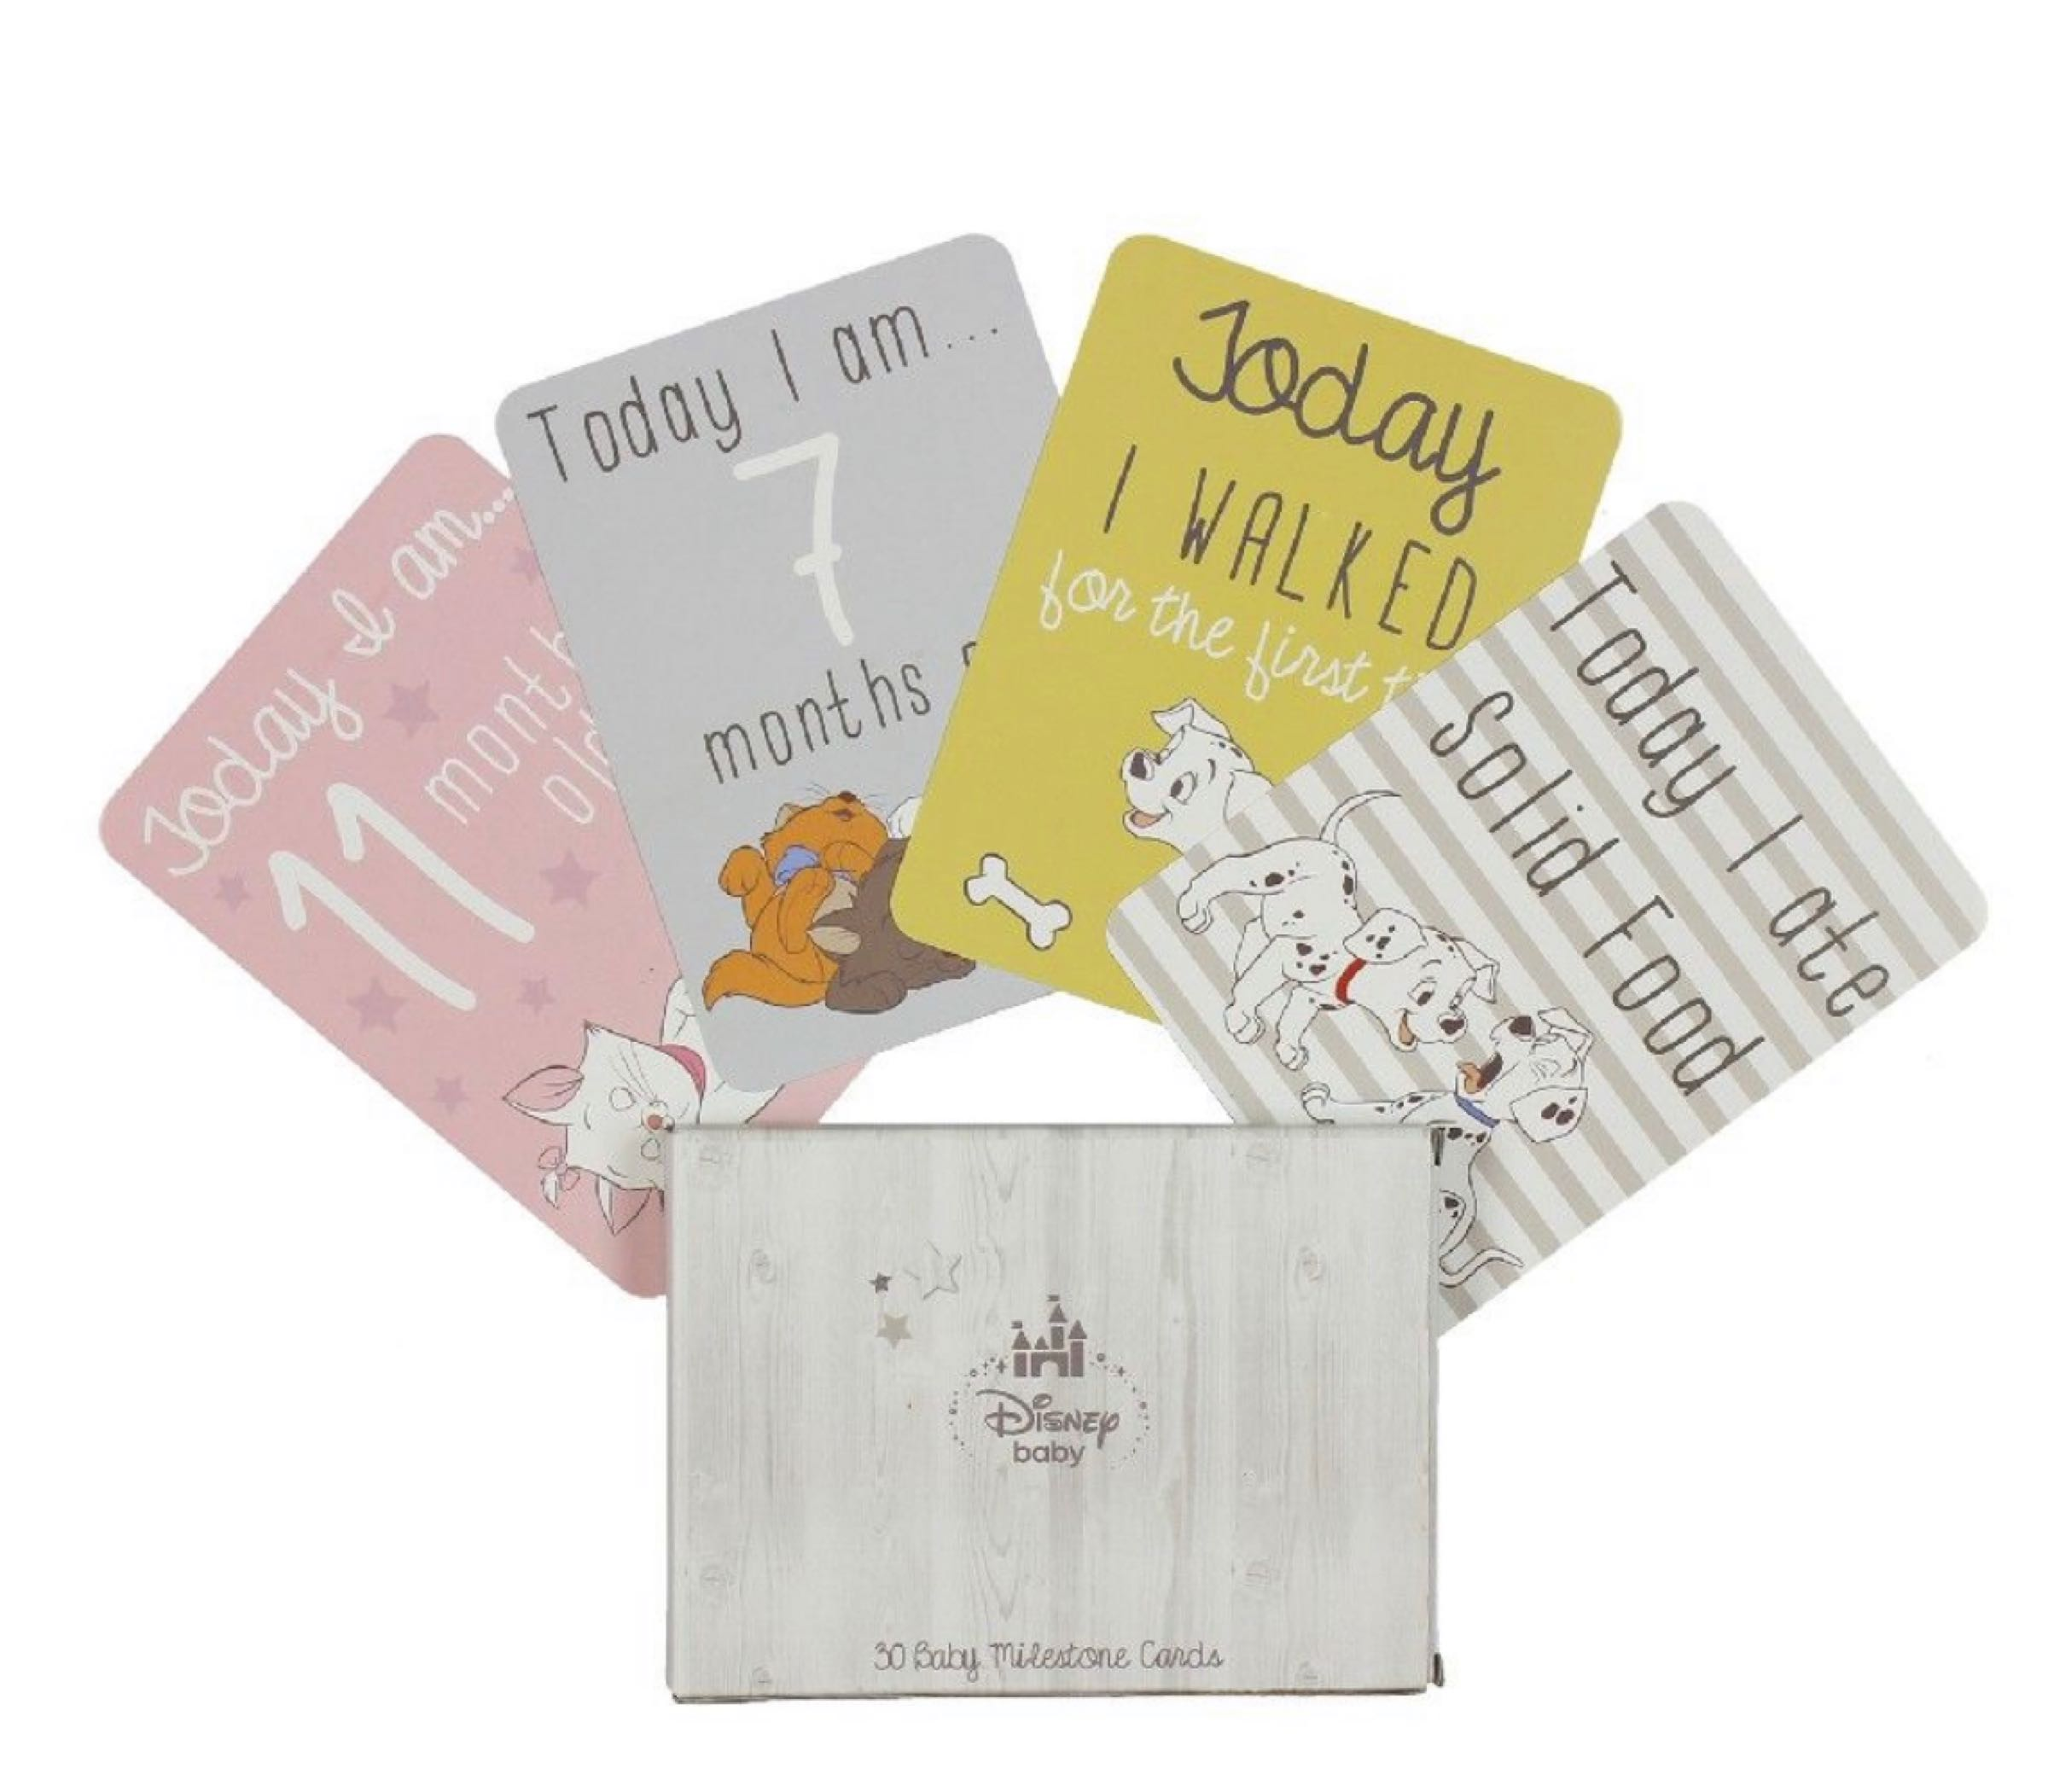 Disney Magical Beginnings Baby 30 Milestone Cards